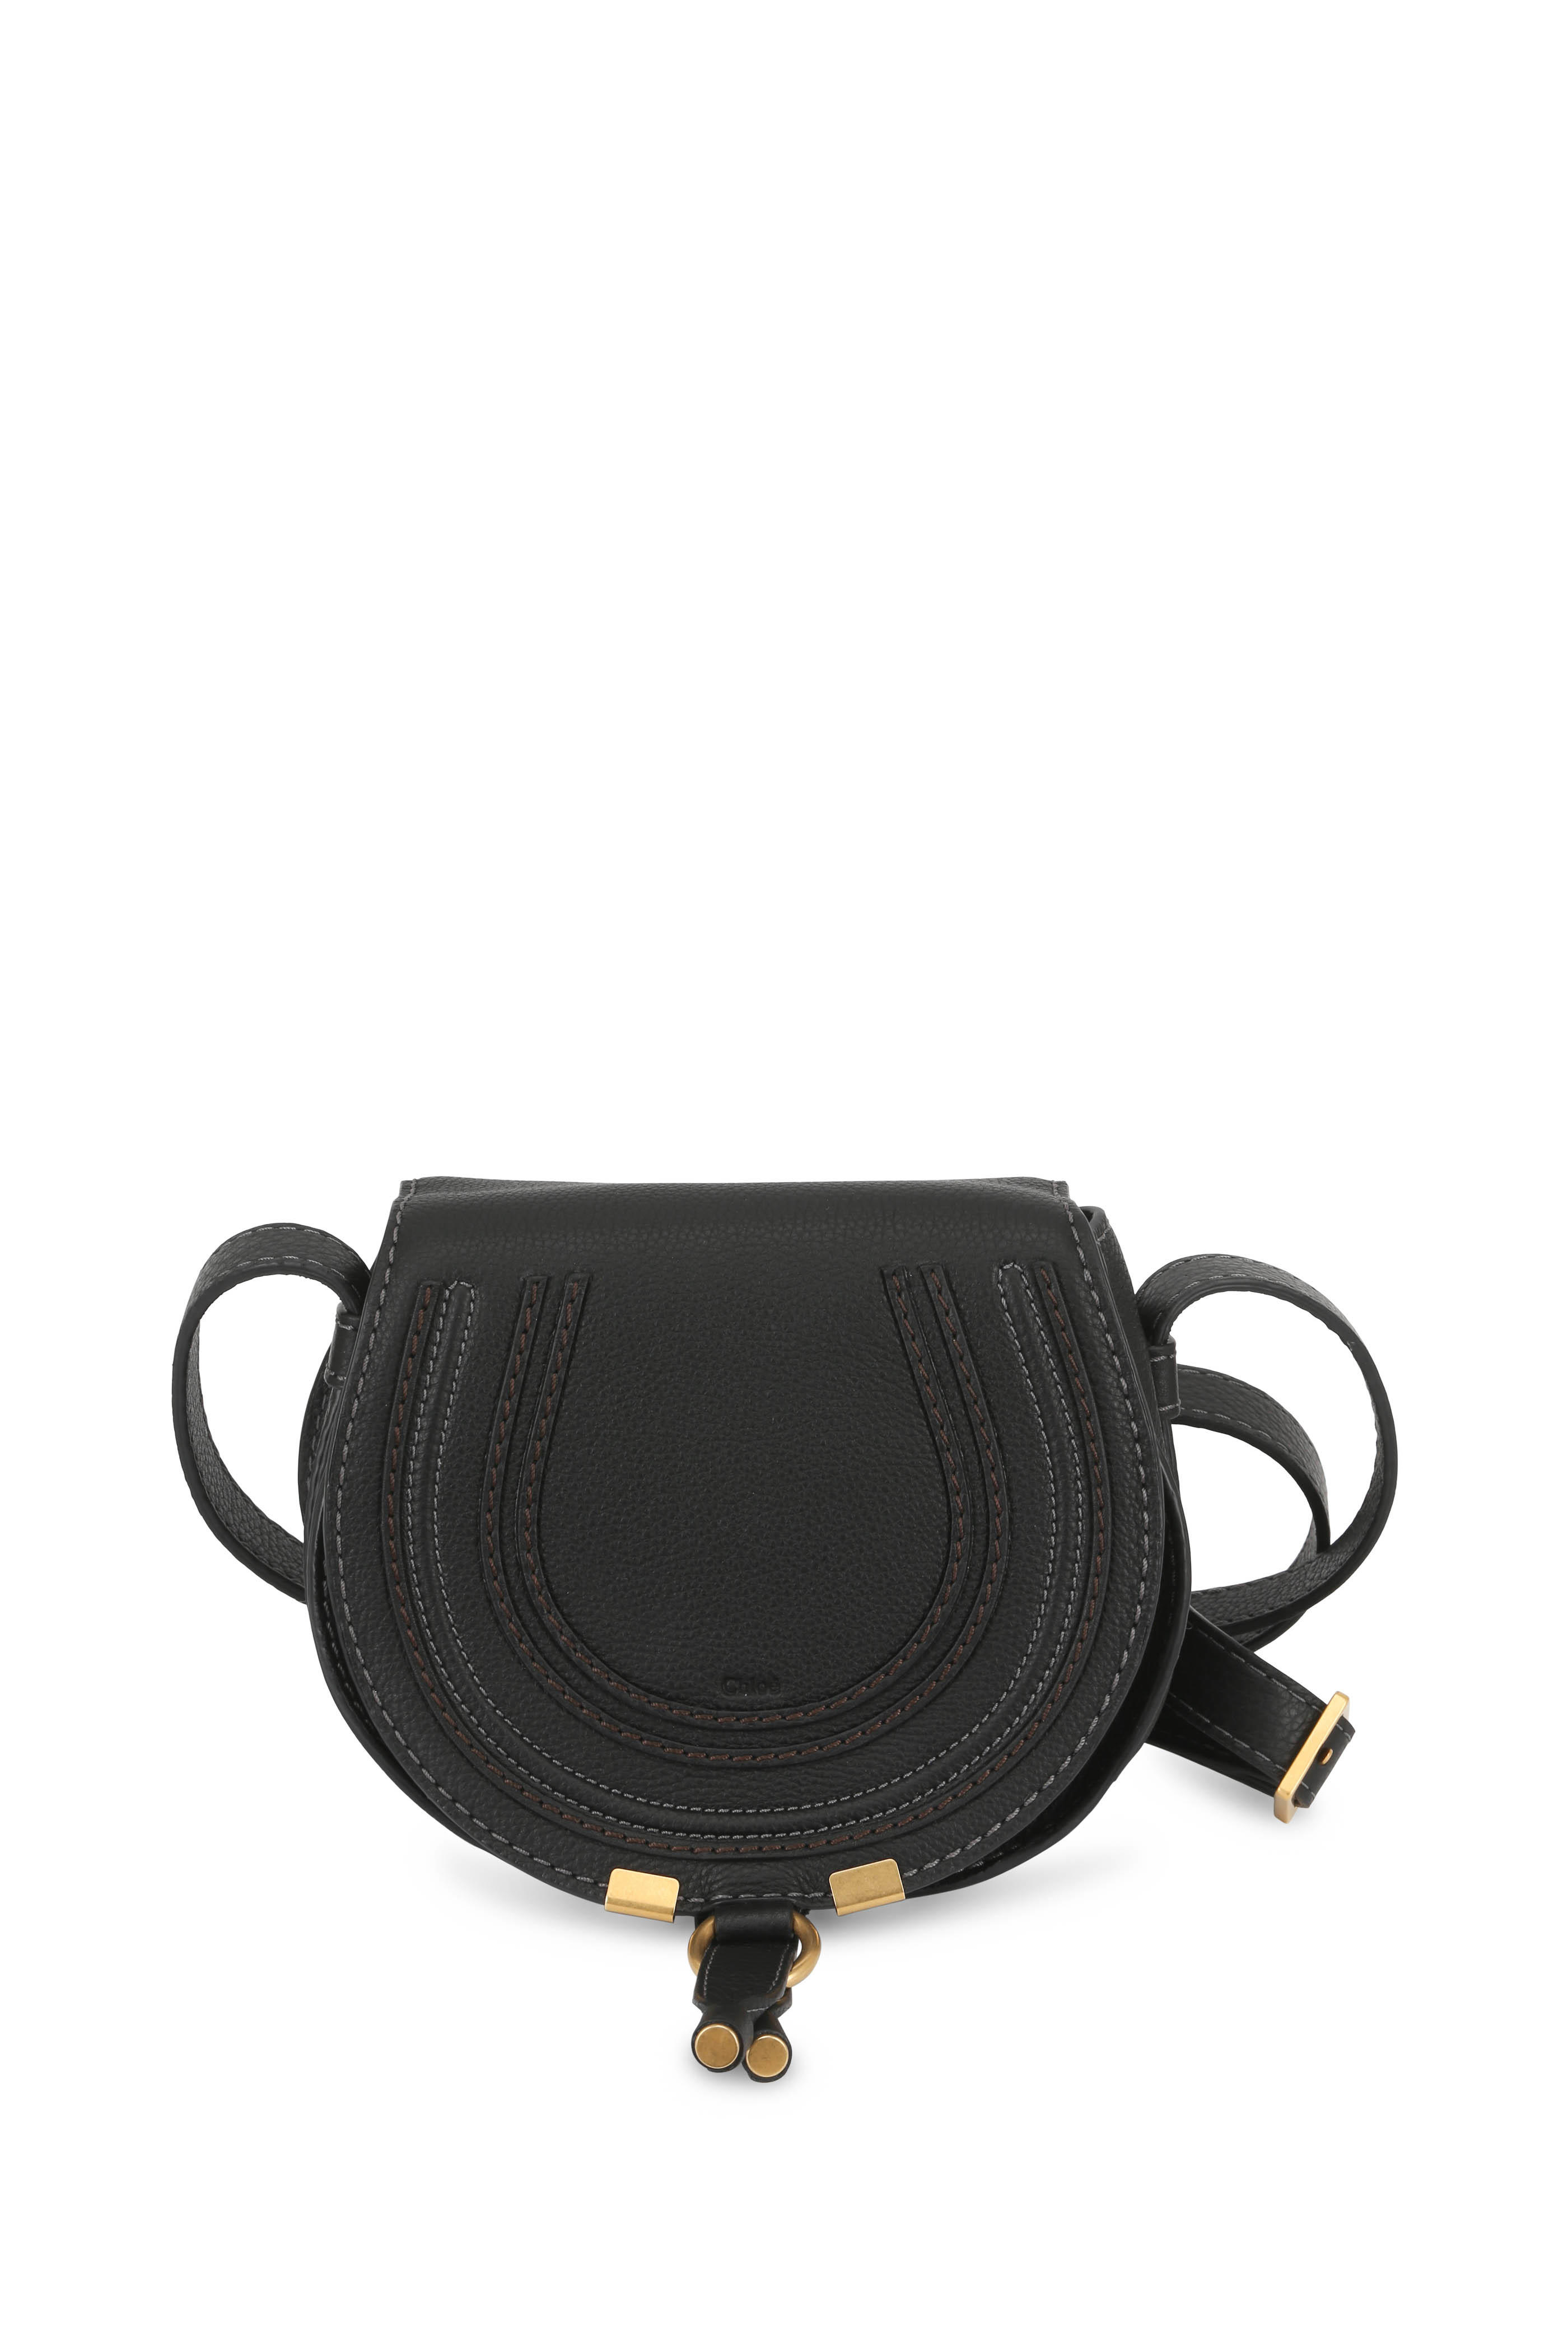 dd48928a73 Chloé - Marcie Black Leather Mini Crossbody | Mitchell Stores